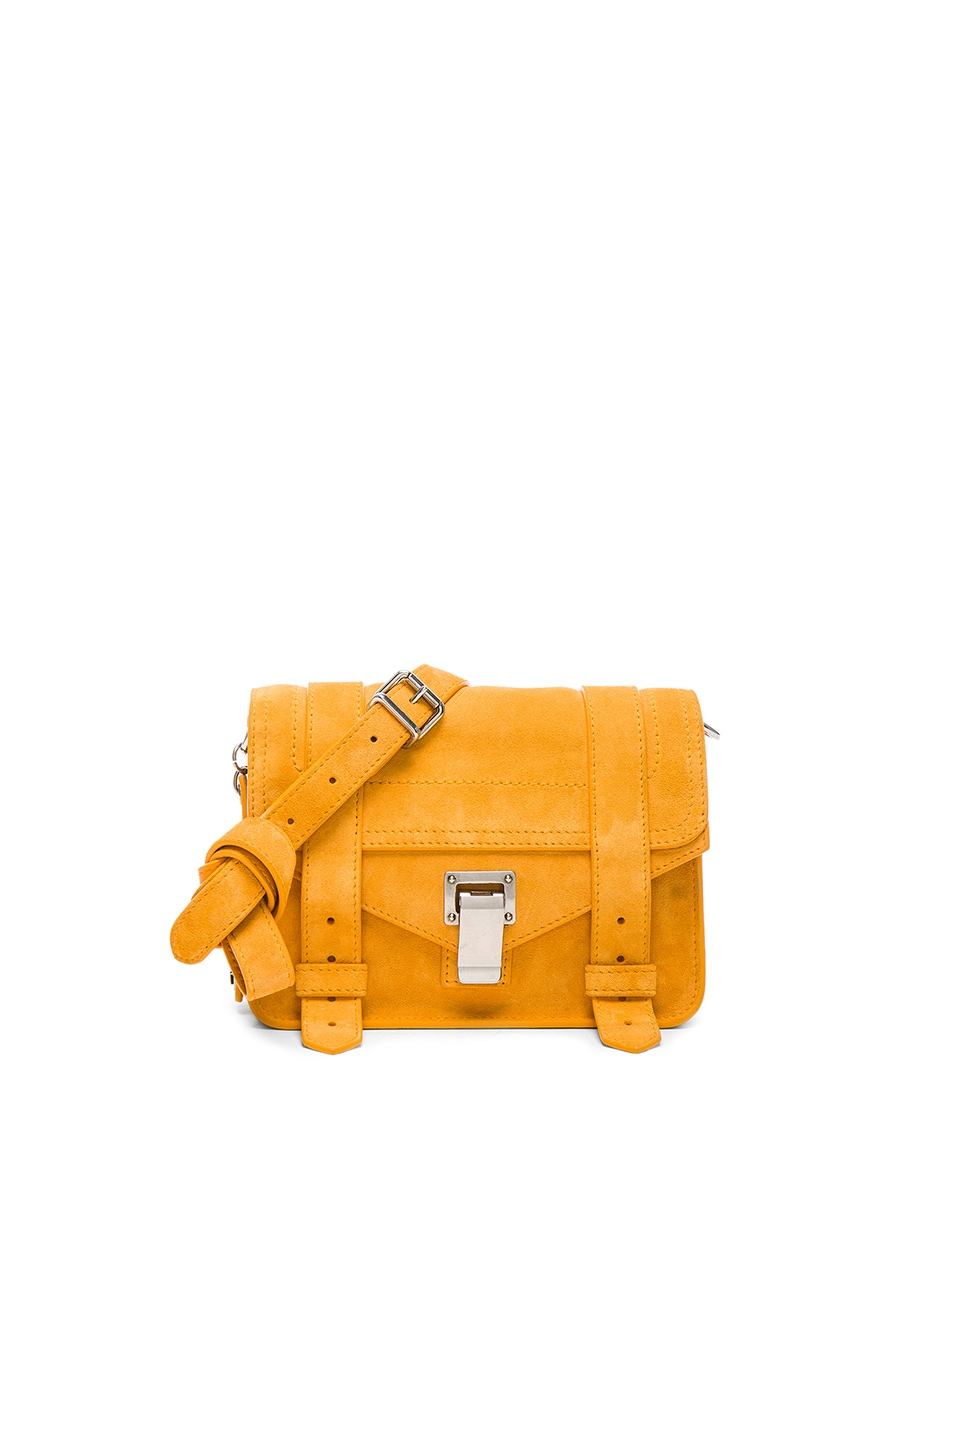 Image 1 of Proenza Schouler Mini Crossbody PS1 Suede in Sunflower